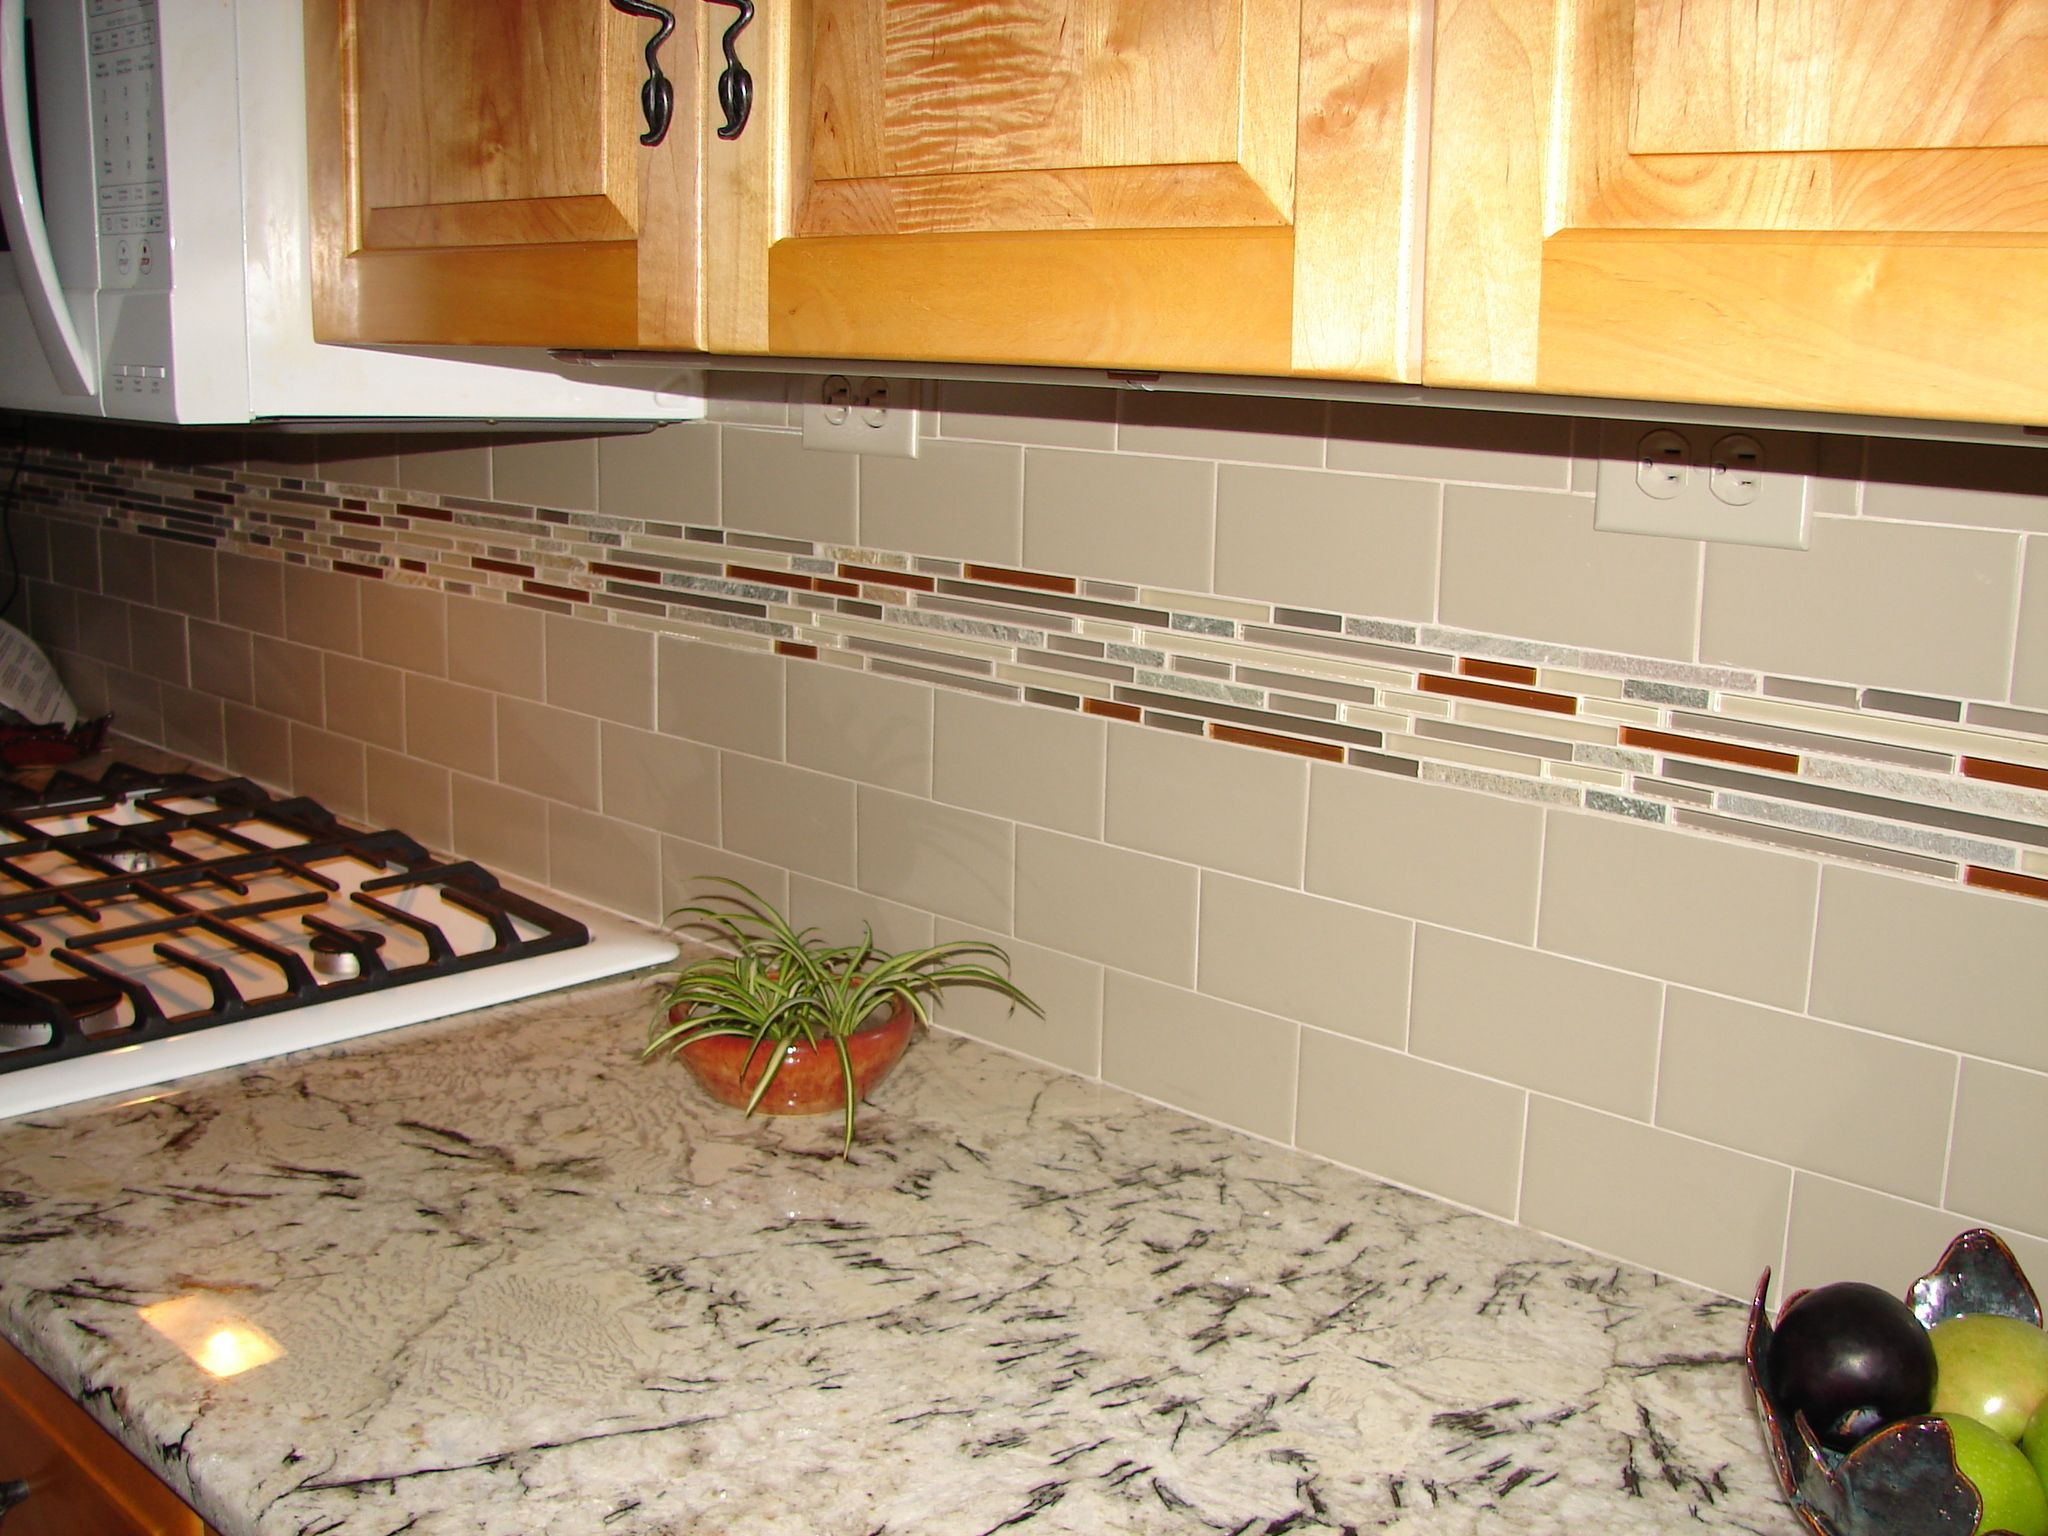 Best Syverson Tile Images On Pinterest Mosaics Backsplash - Daltile backsplash ideas